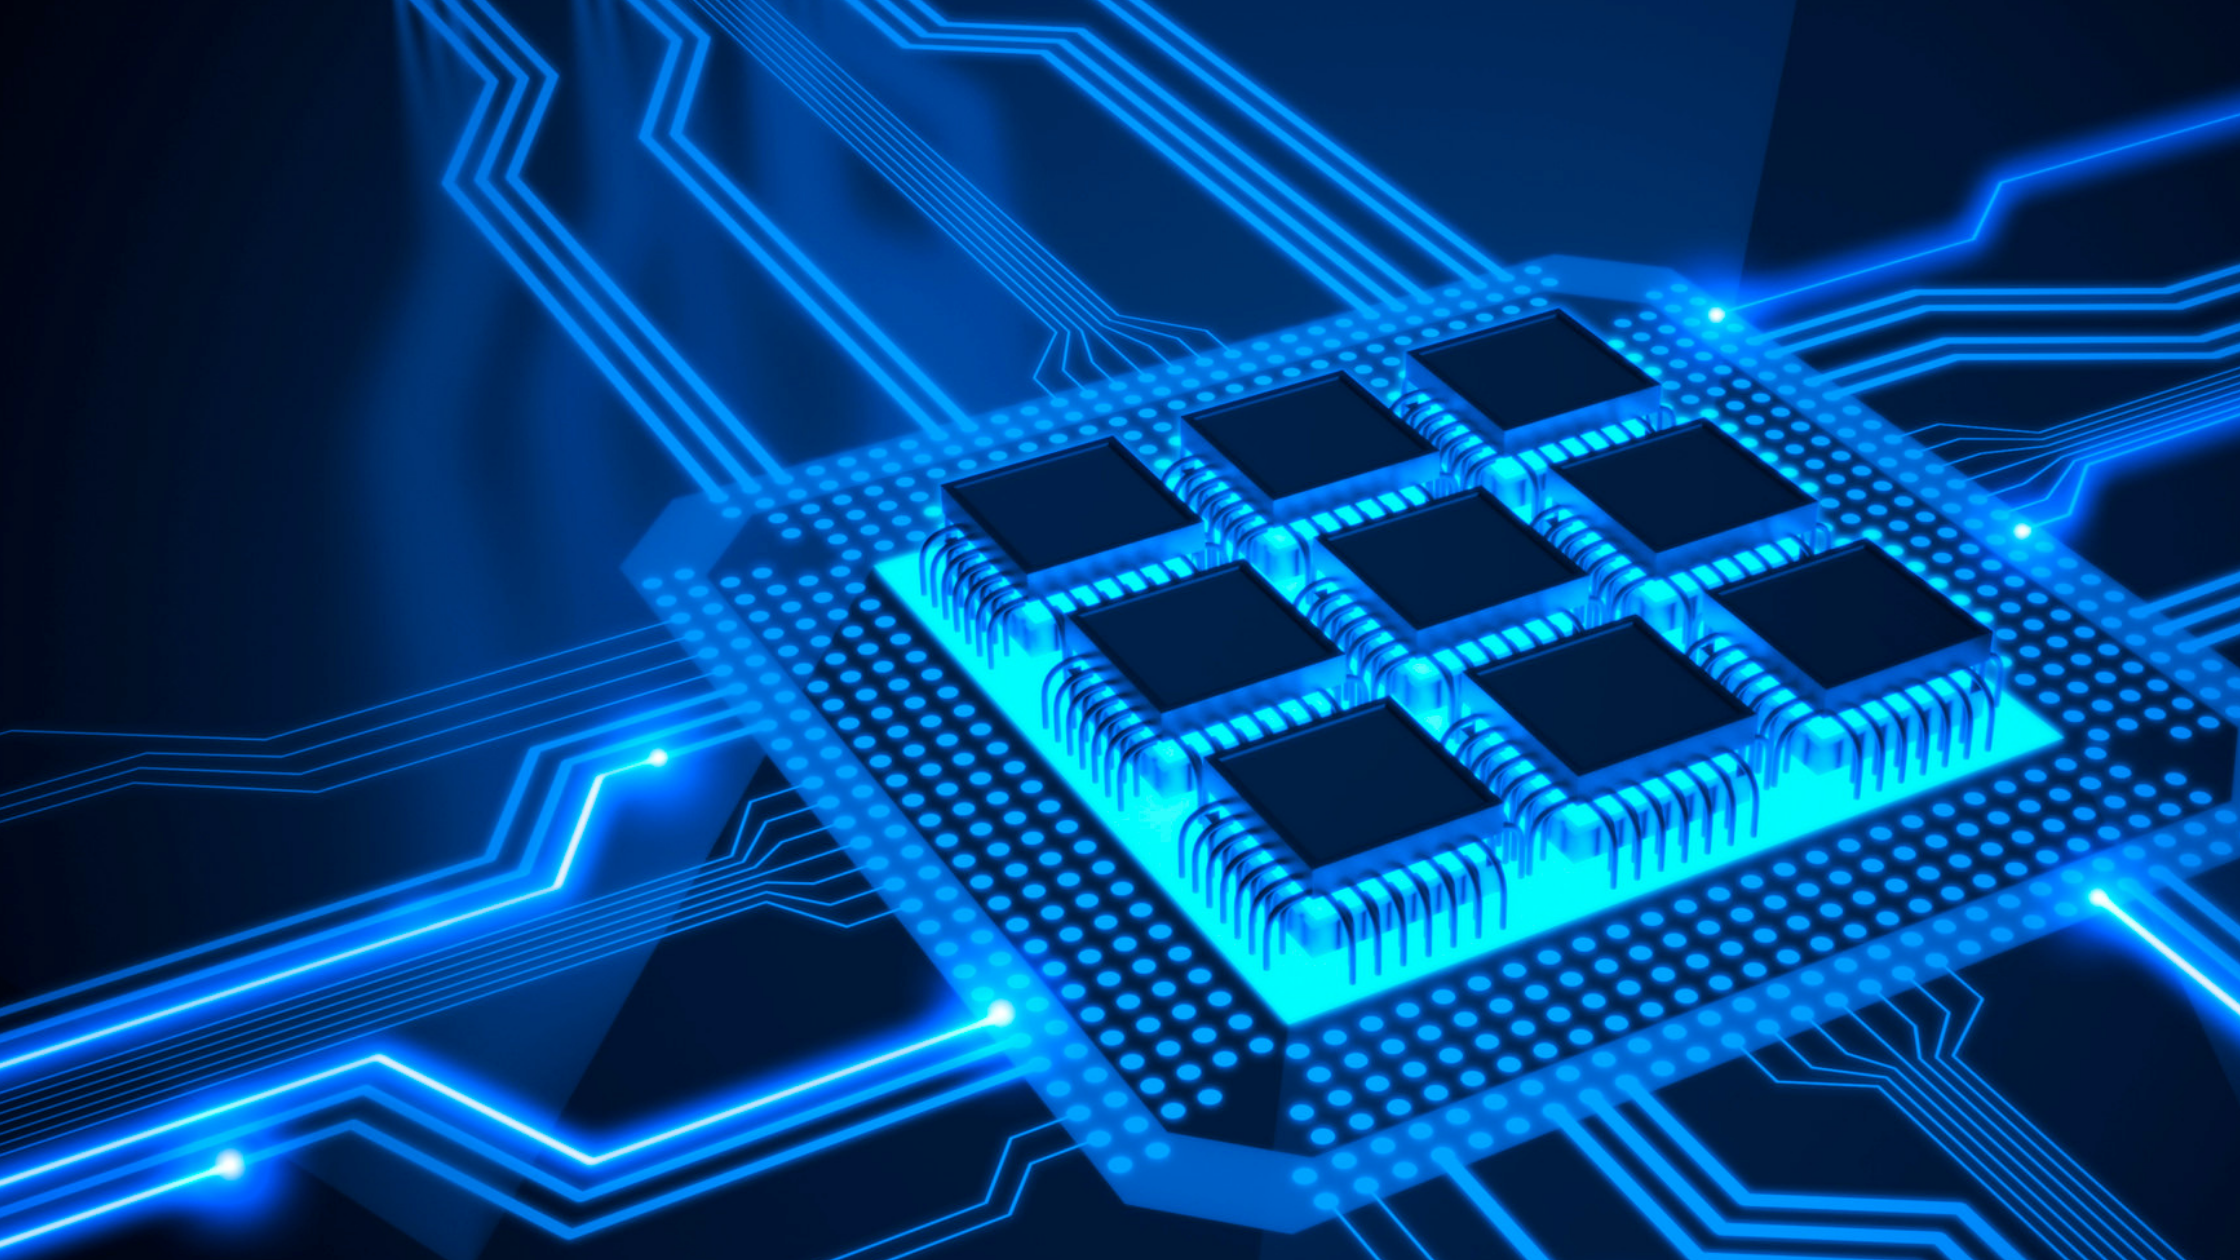 From Shortage to Surplus: What's Happening with the Global Chip Supply?